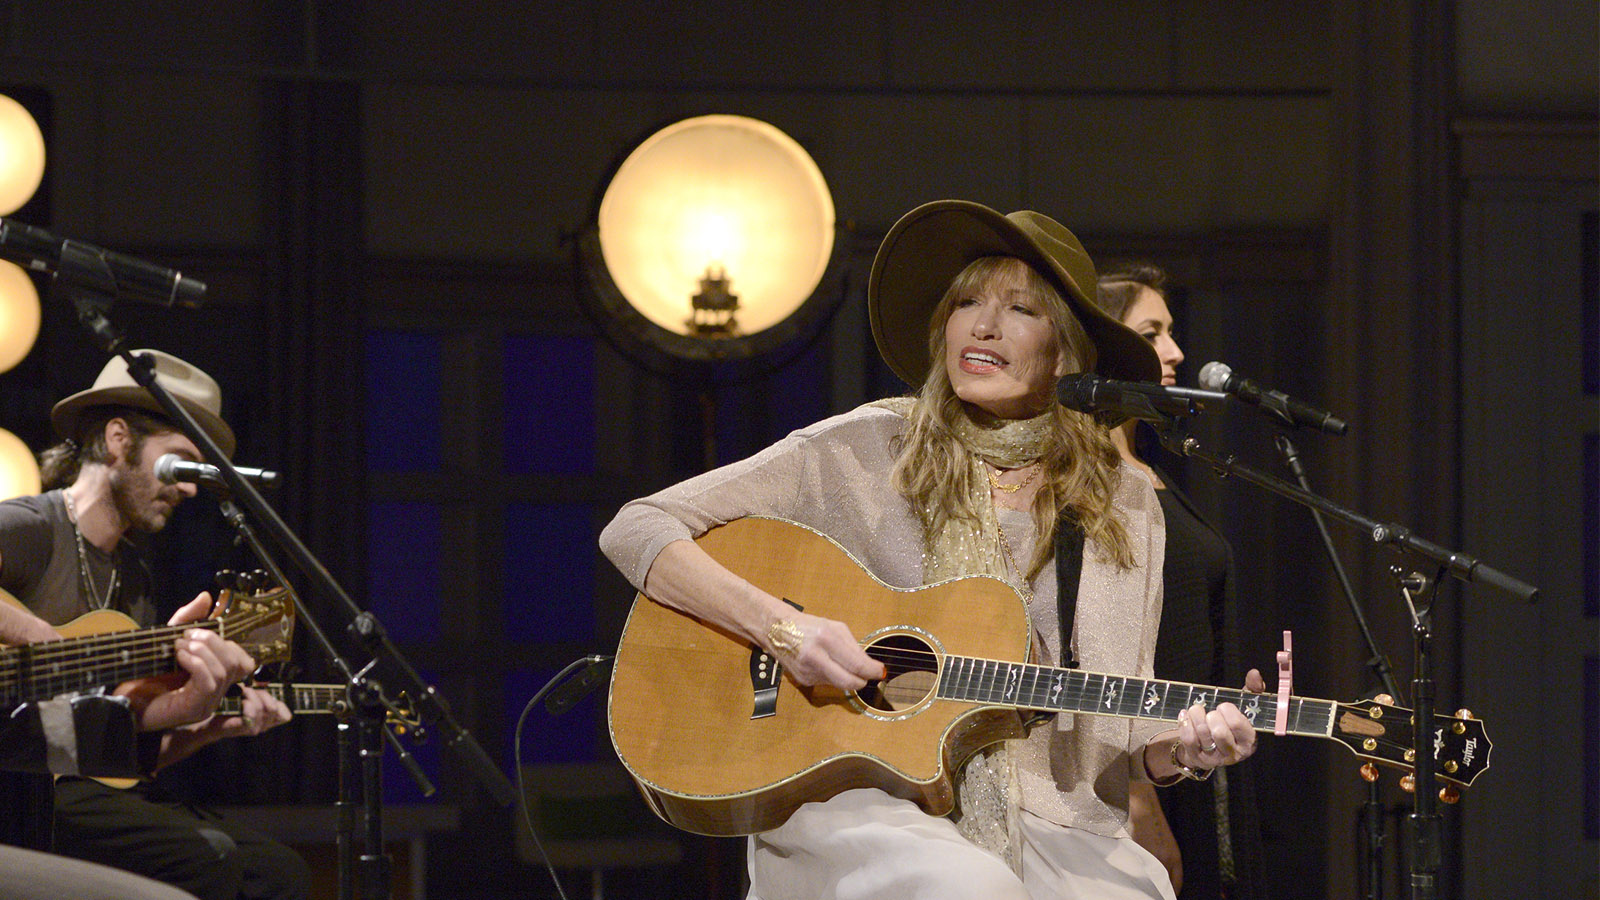 Carly Simon on Mick Jagger, Taylor Swift—and being herself